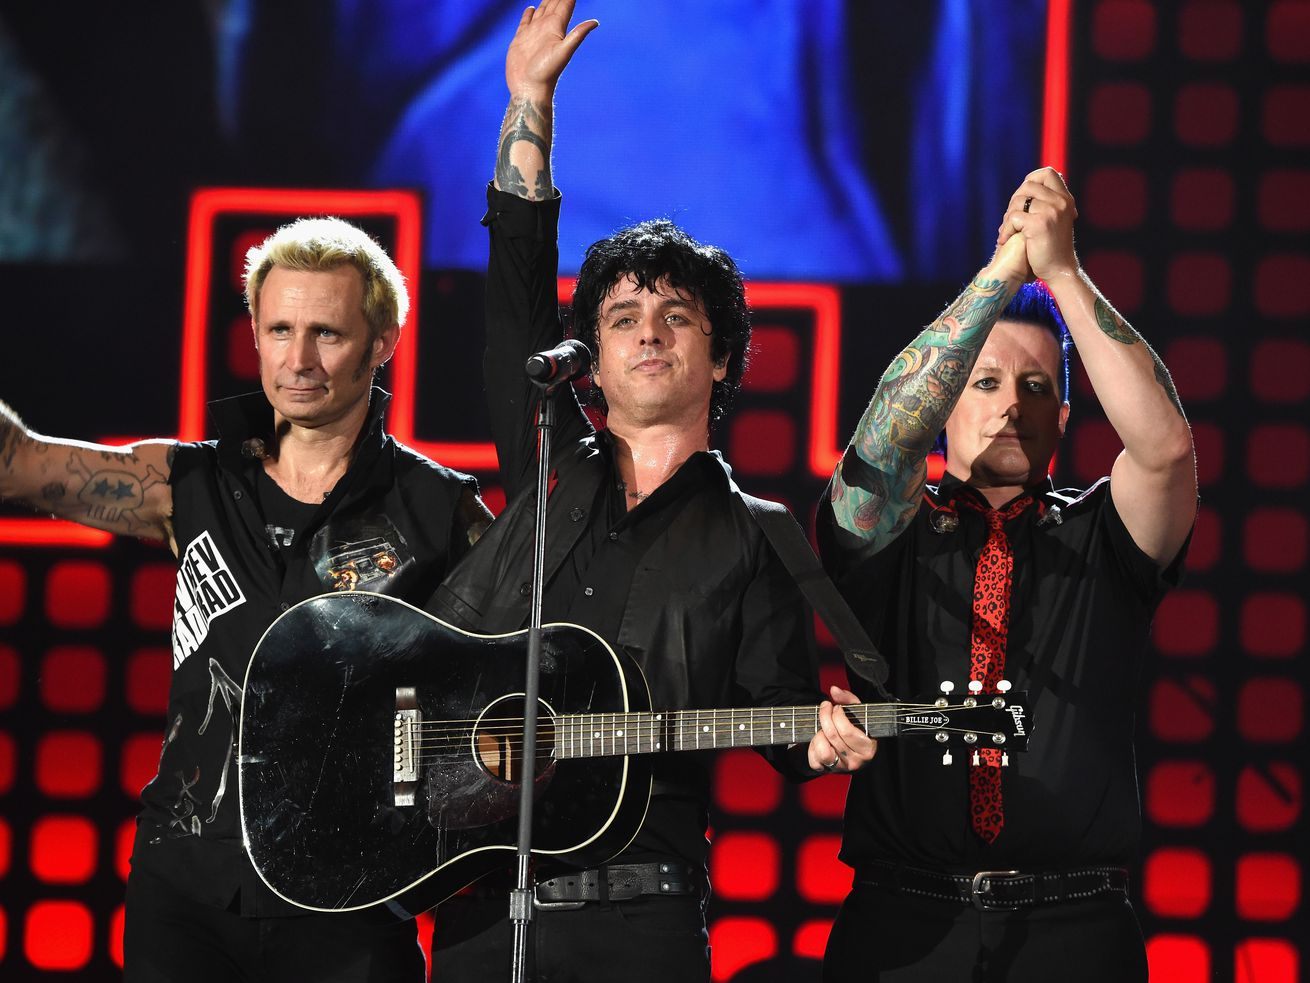 Punk rock band Green Day performs onstage during Global Citizen Festival 2017 at Central Park in New York City.